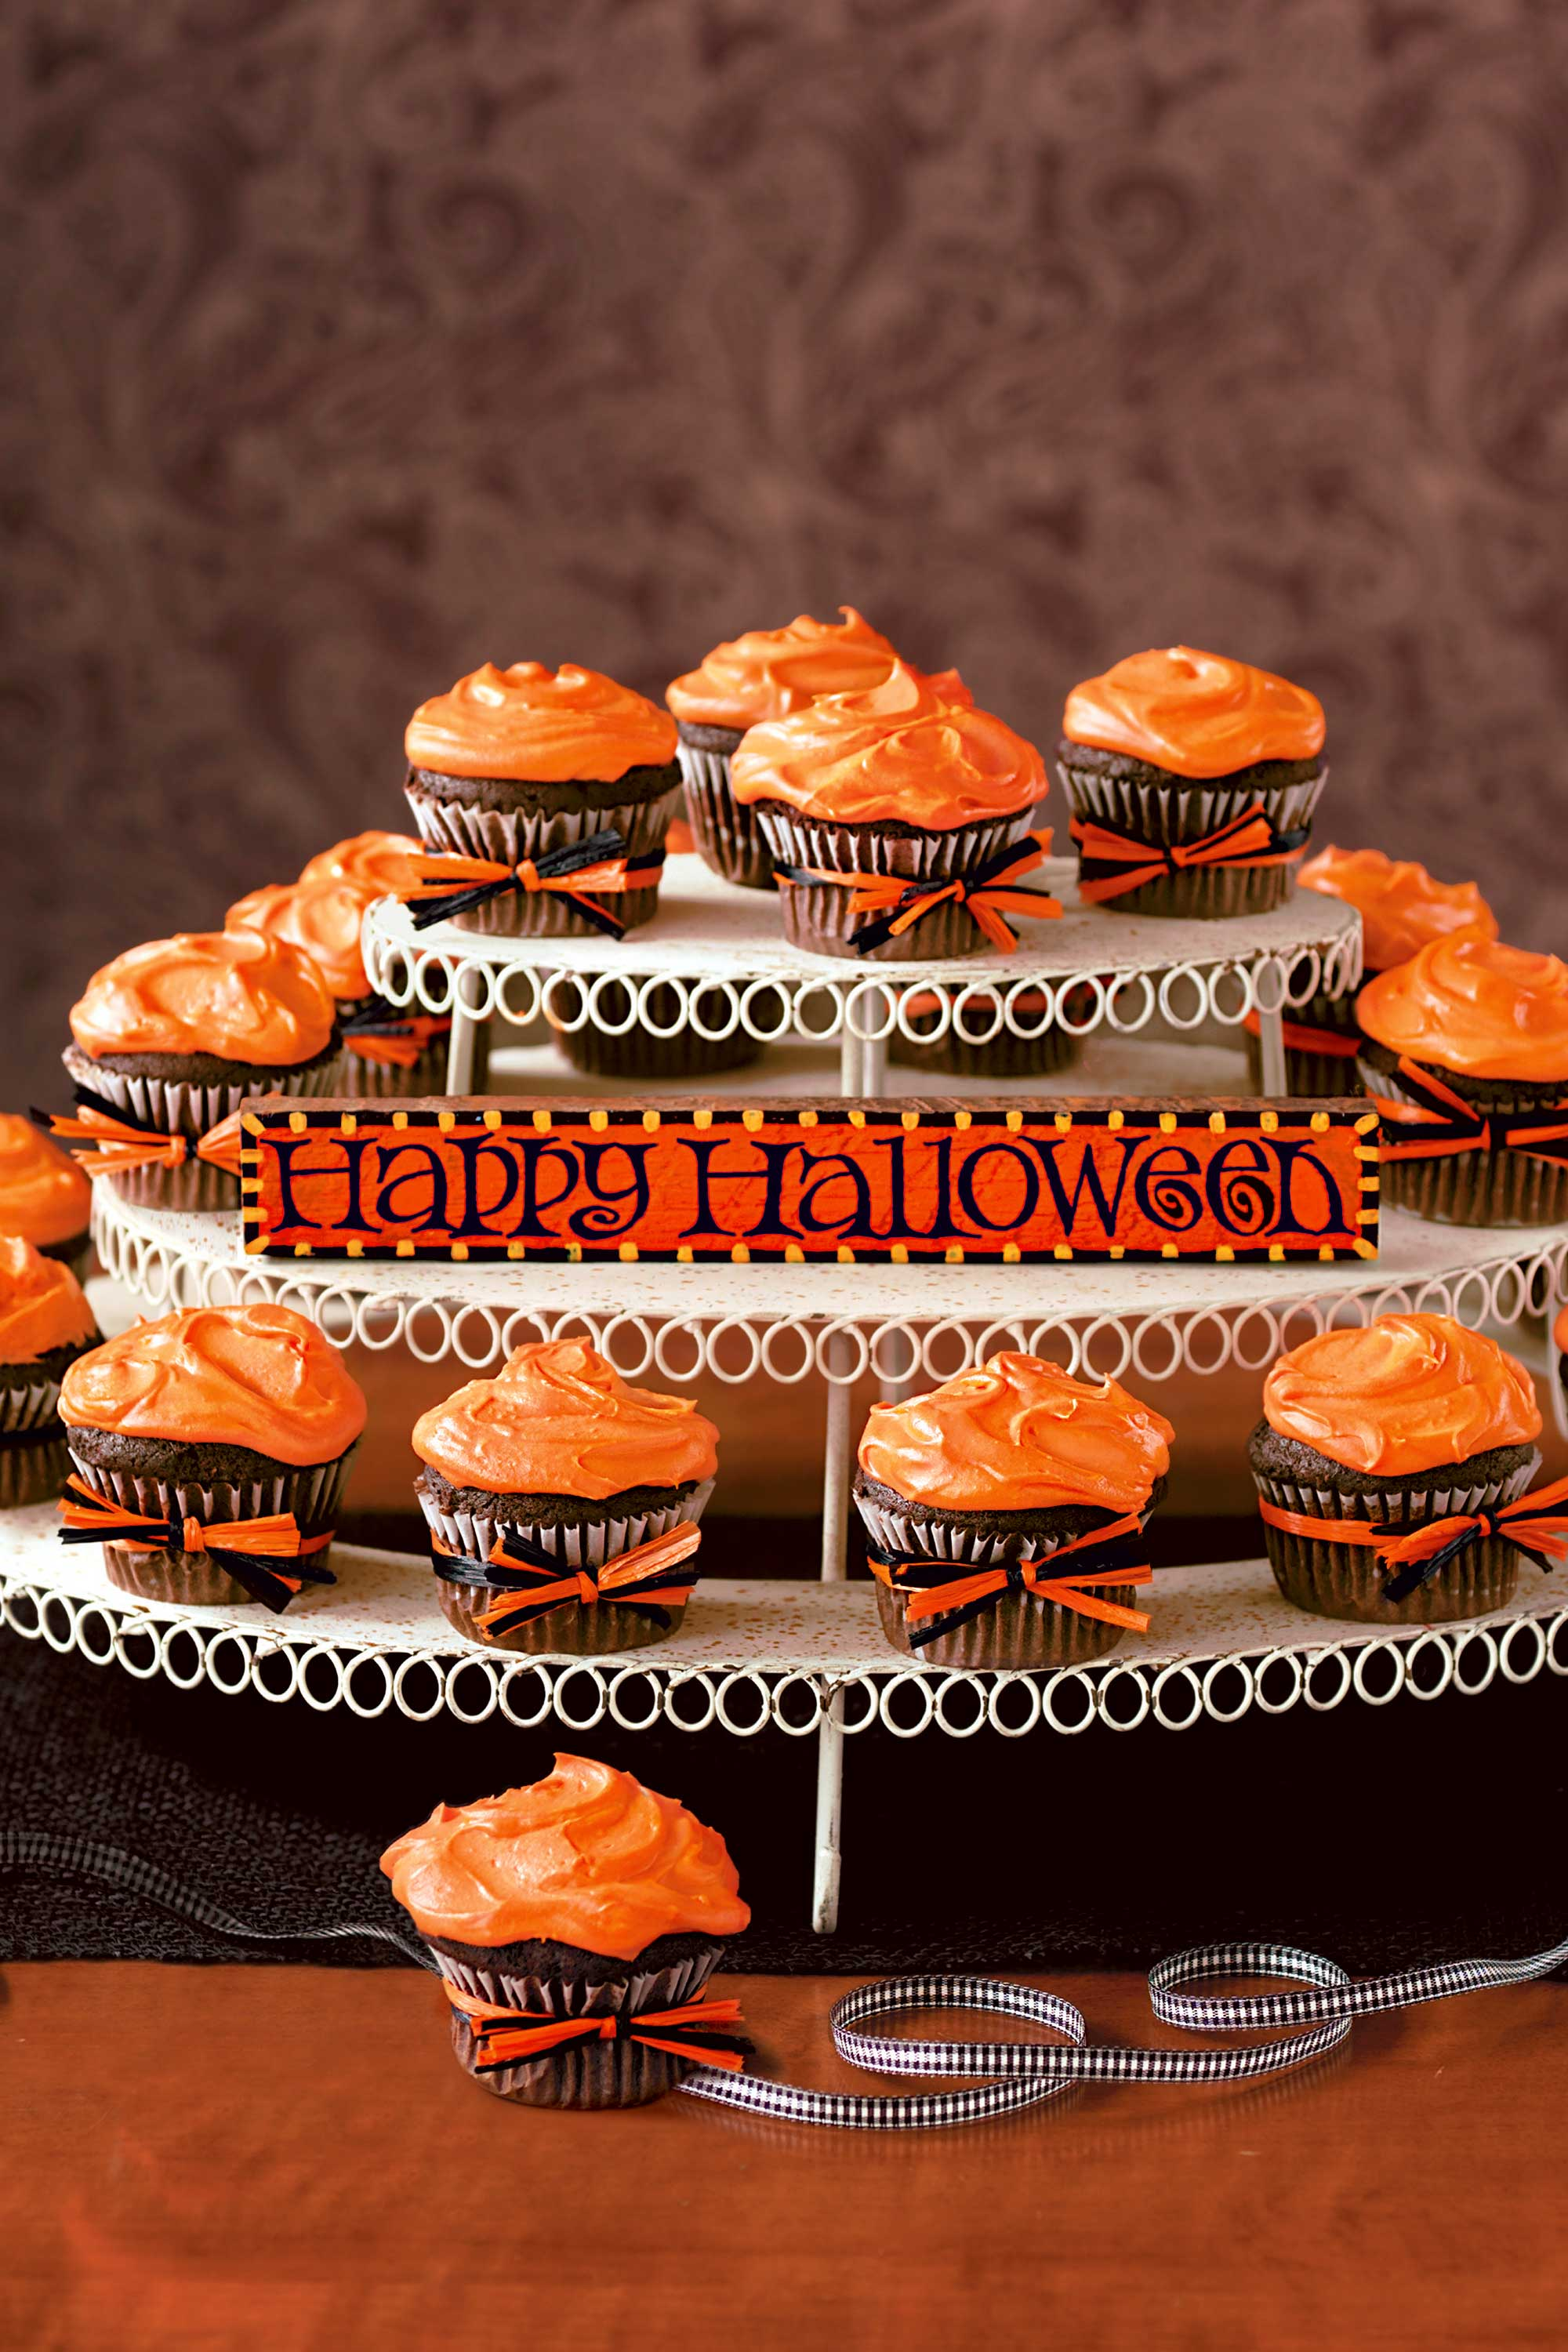 Halloween Cupcake Ideas Easy Recipes For Cute Halloween Cupcakes - 8 simple diy food centerpieces for thanksgiving to try